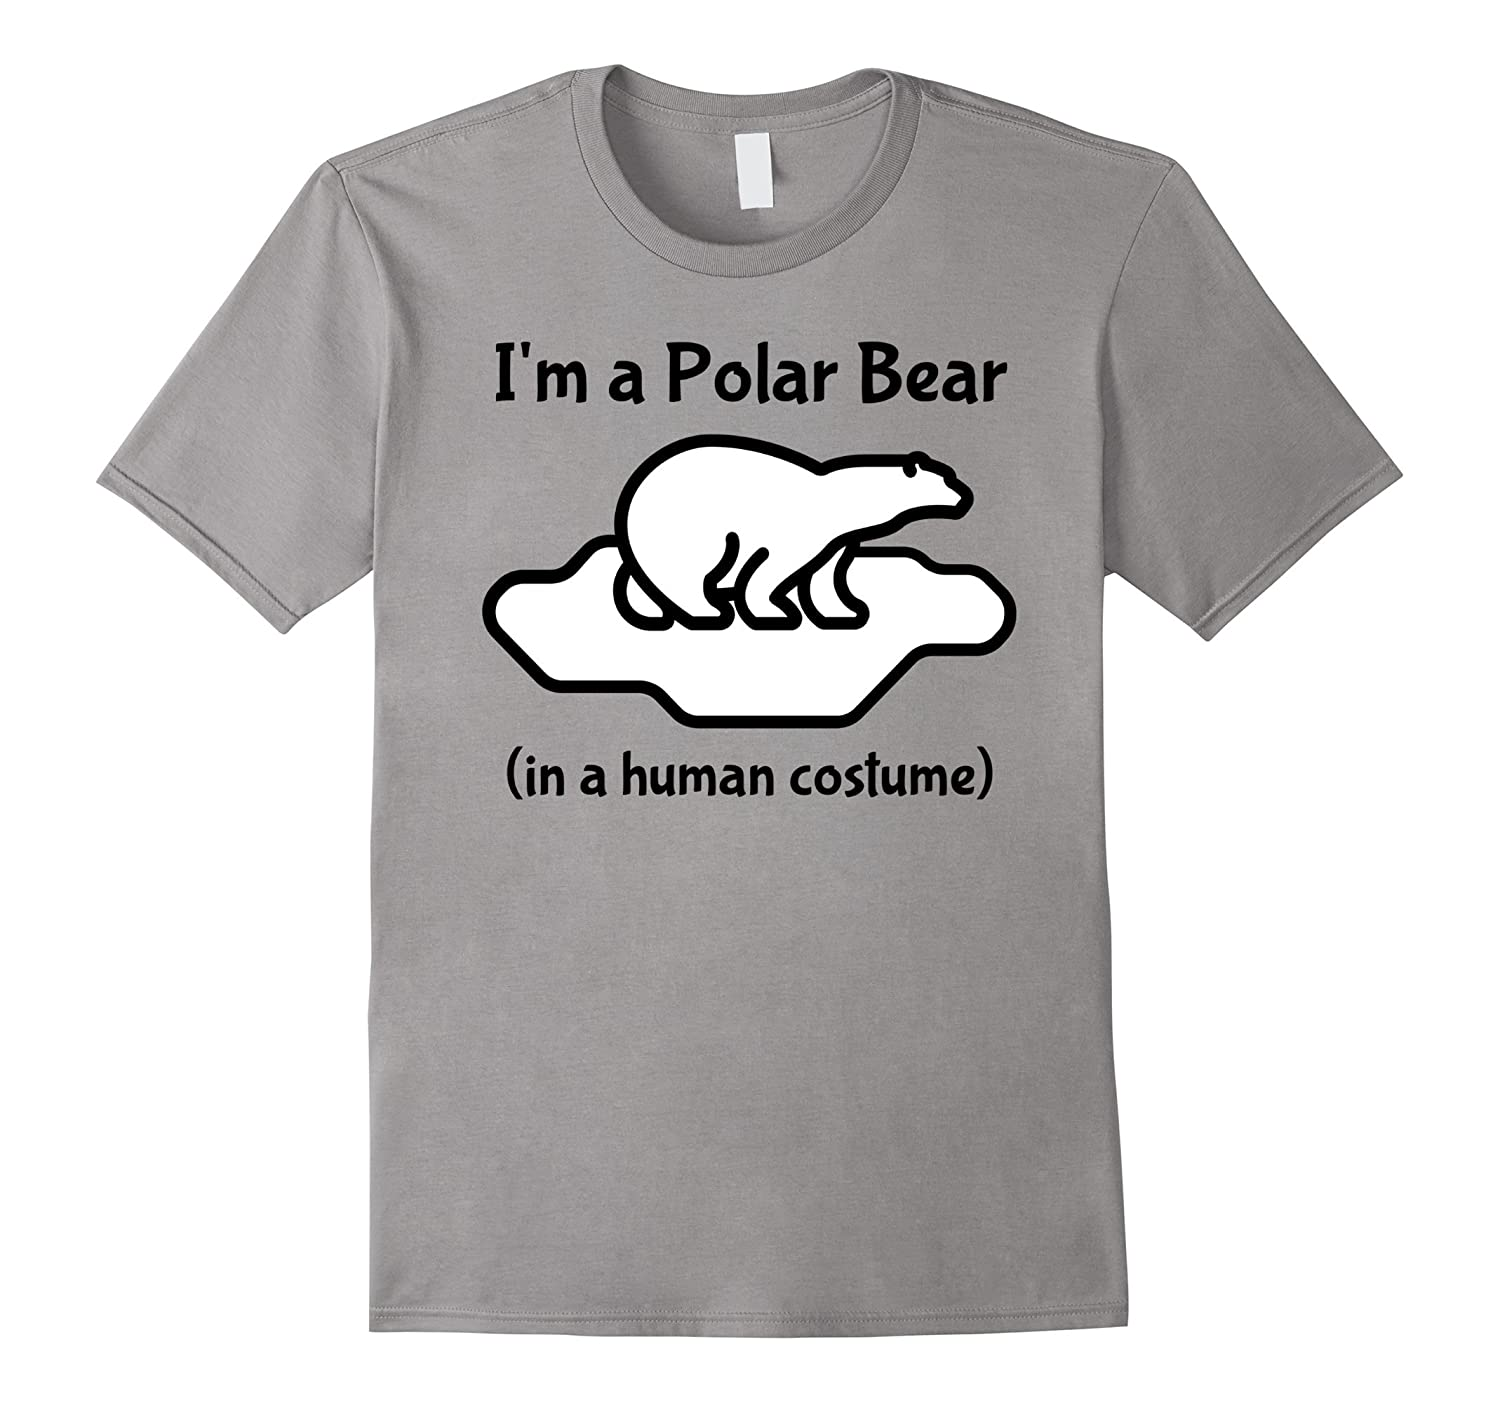 I'm a Polar Bear in a Human Costume Novelty T-Shirt-FL